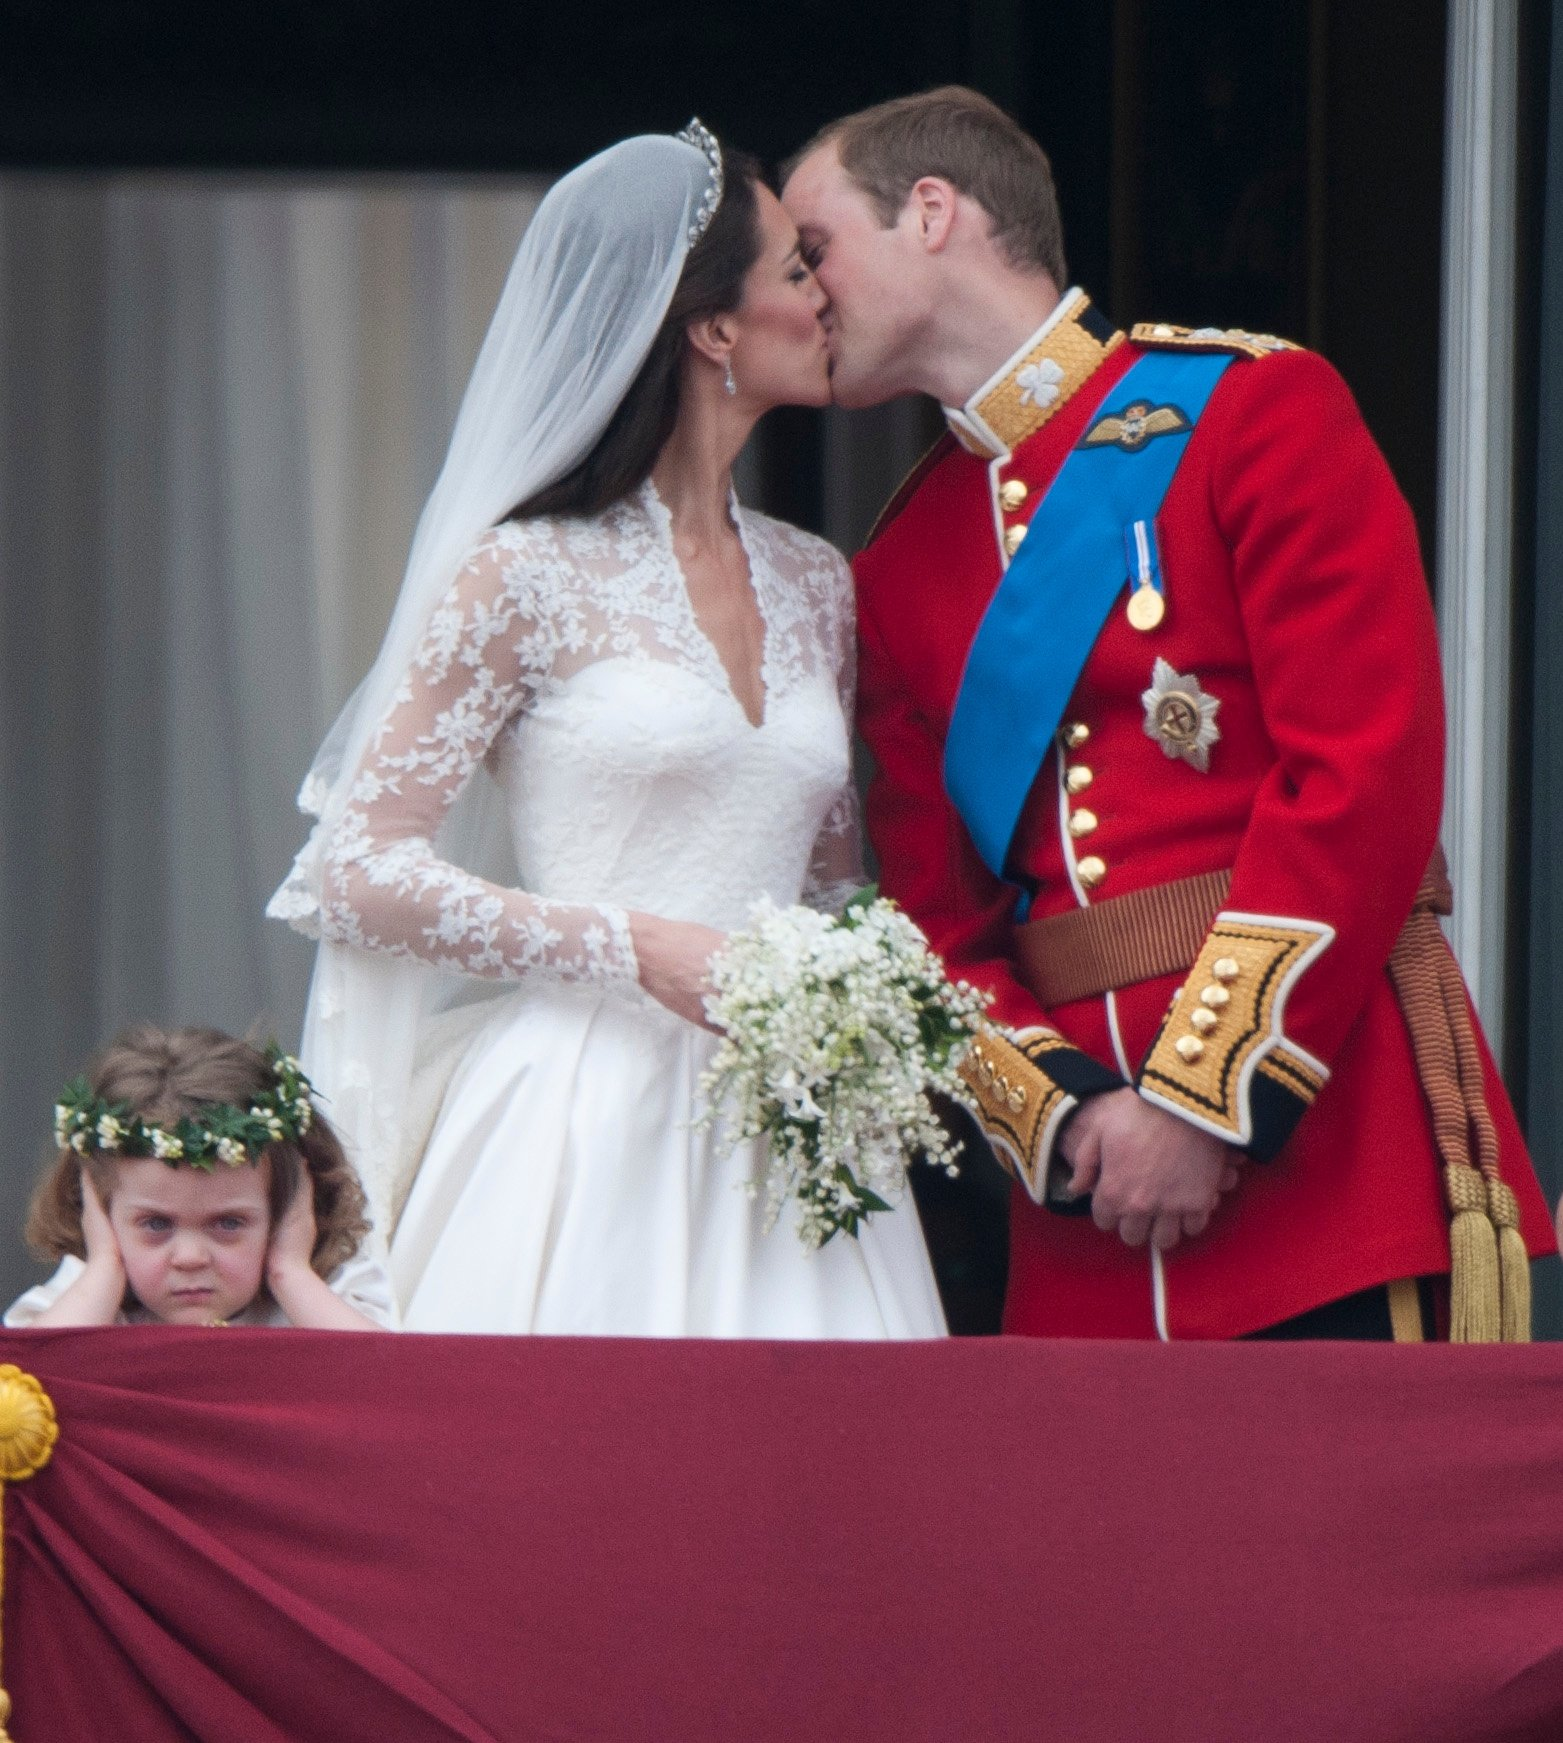 Kate Middleton and Prince William on the balcony at Buckingham Palace with bridesmaid Grace Van Cutsem, on April 29, 2011 in London, England | Photo: Getty Images